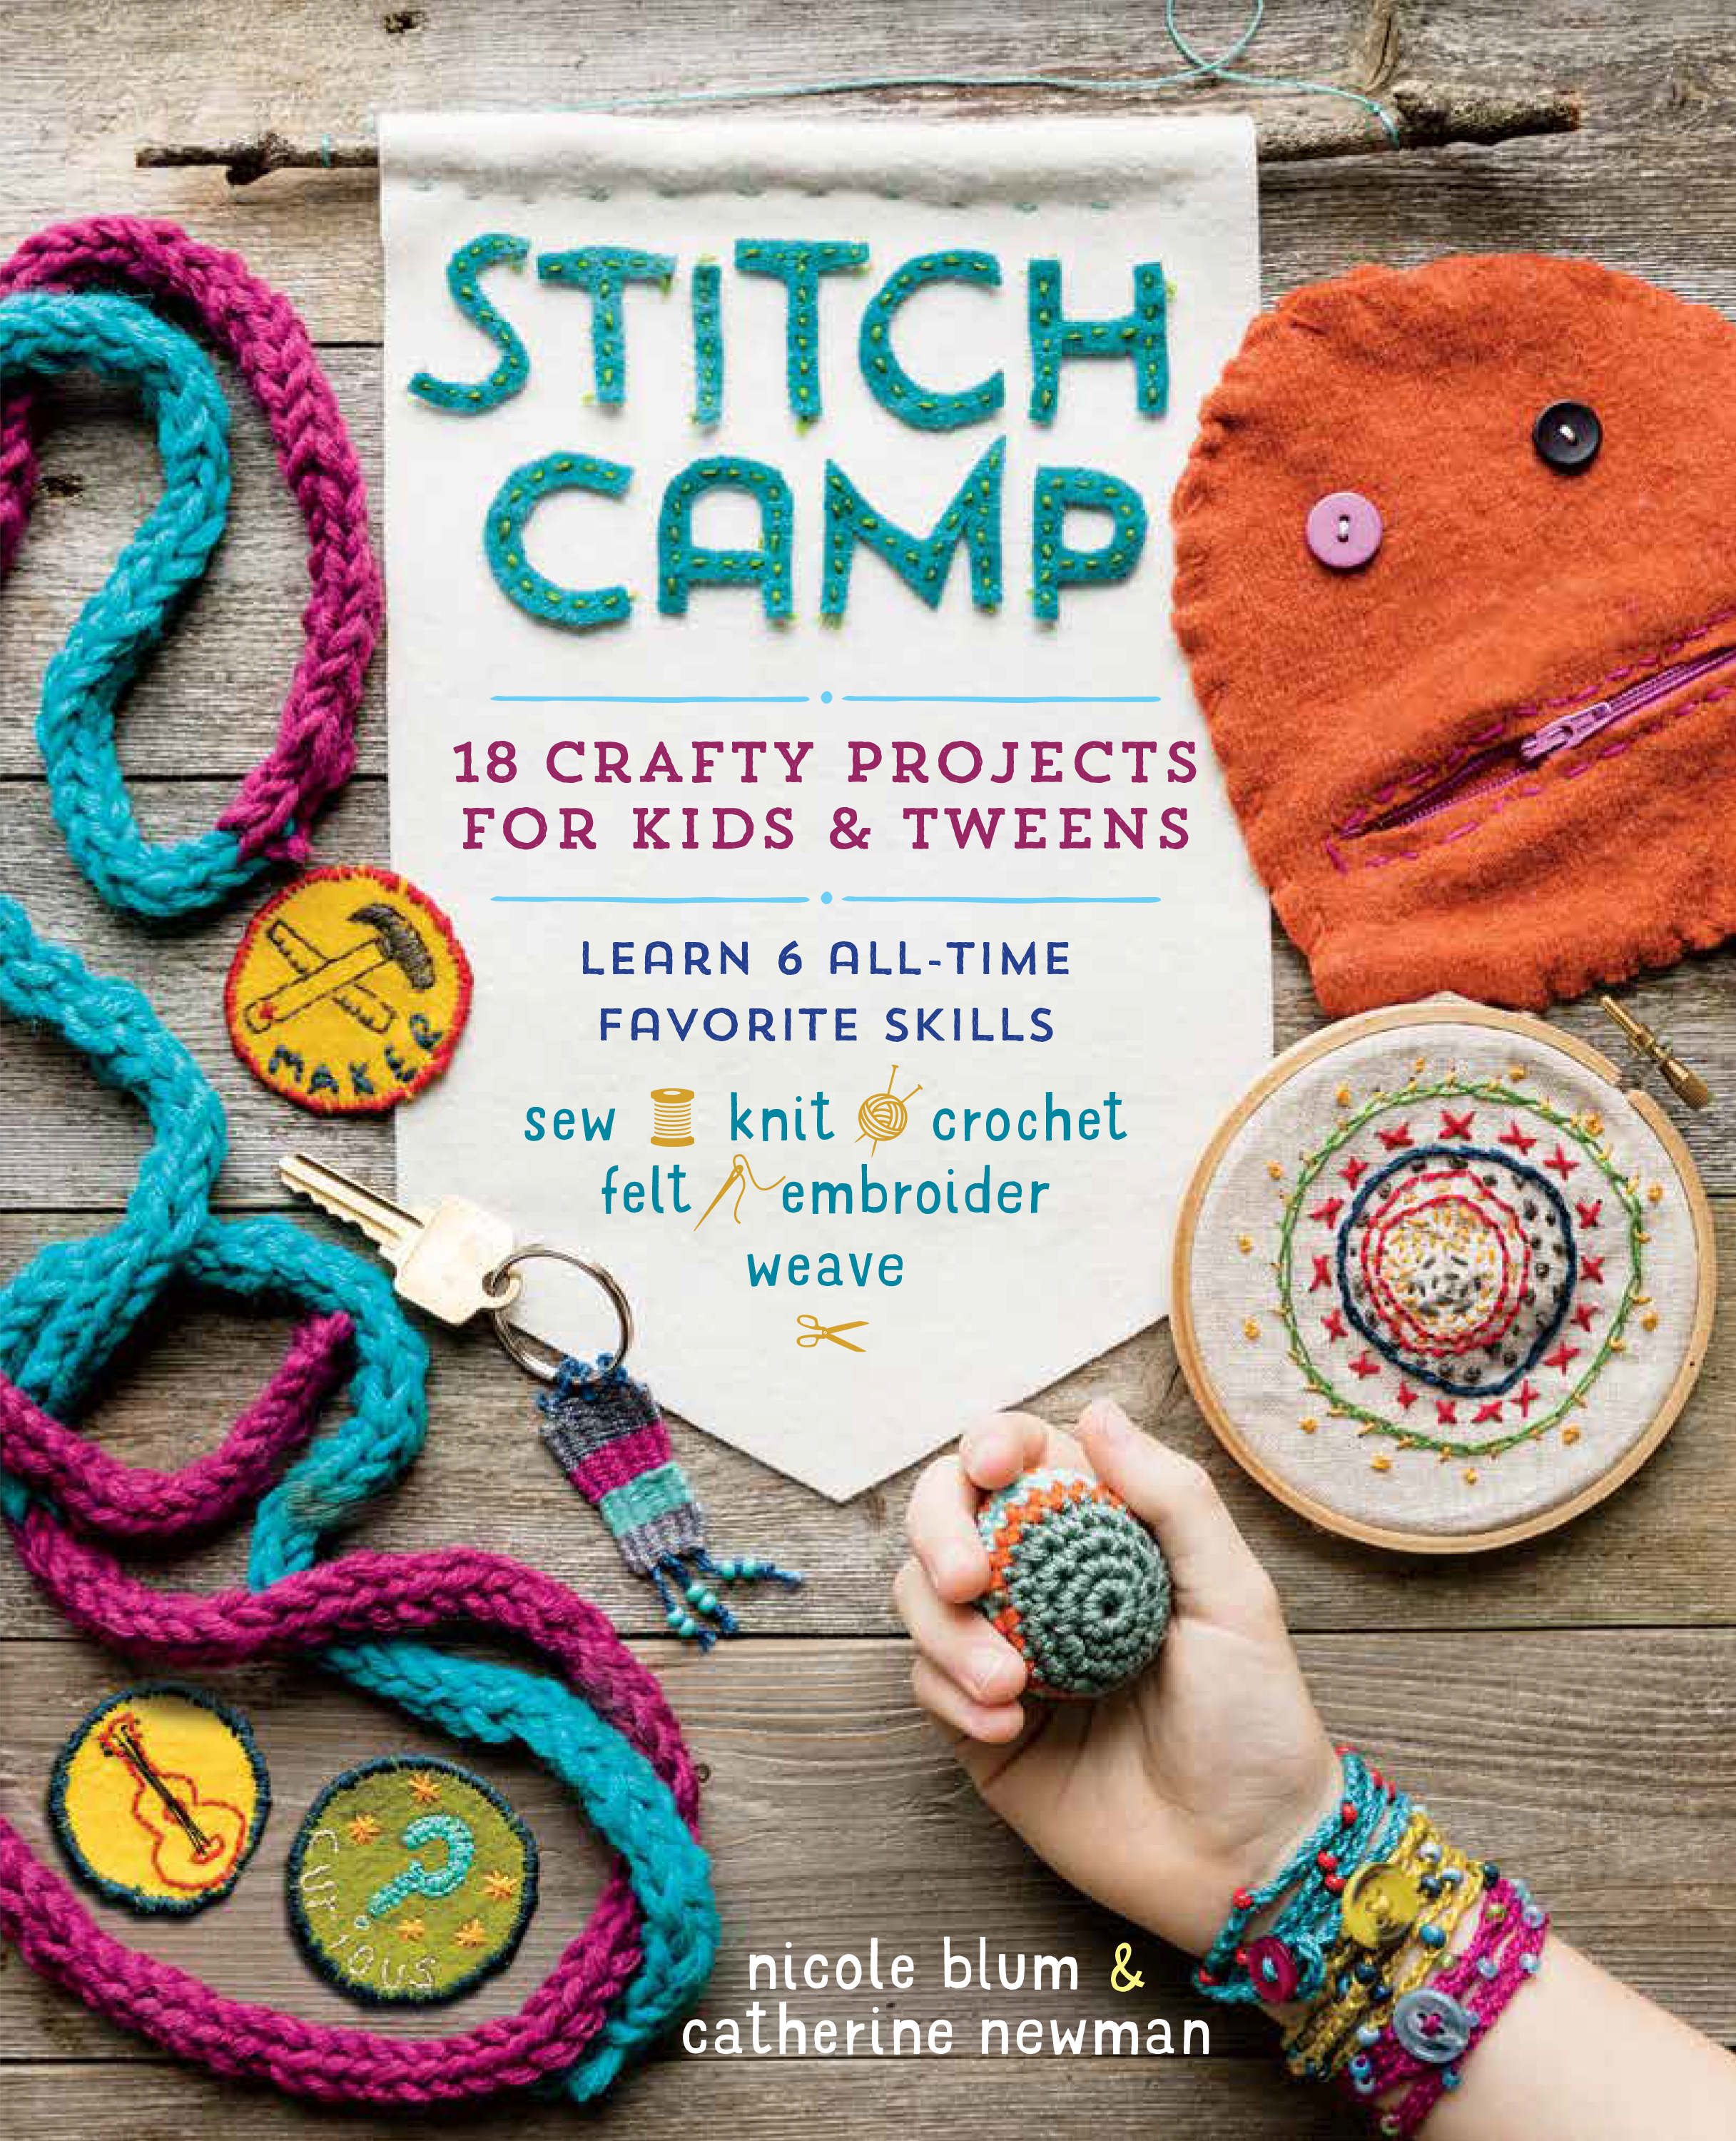 Stitch Camp - 18 Crafty Projects for Kids & Tweens